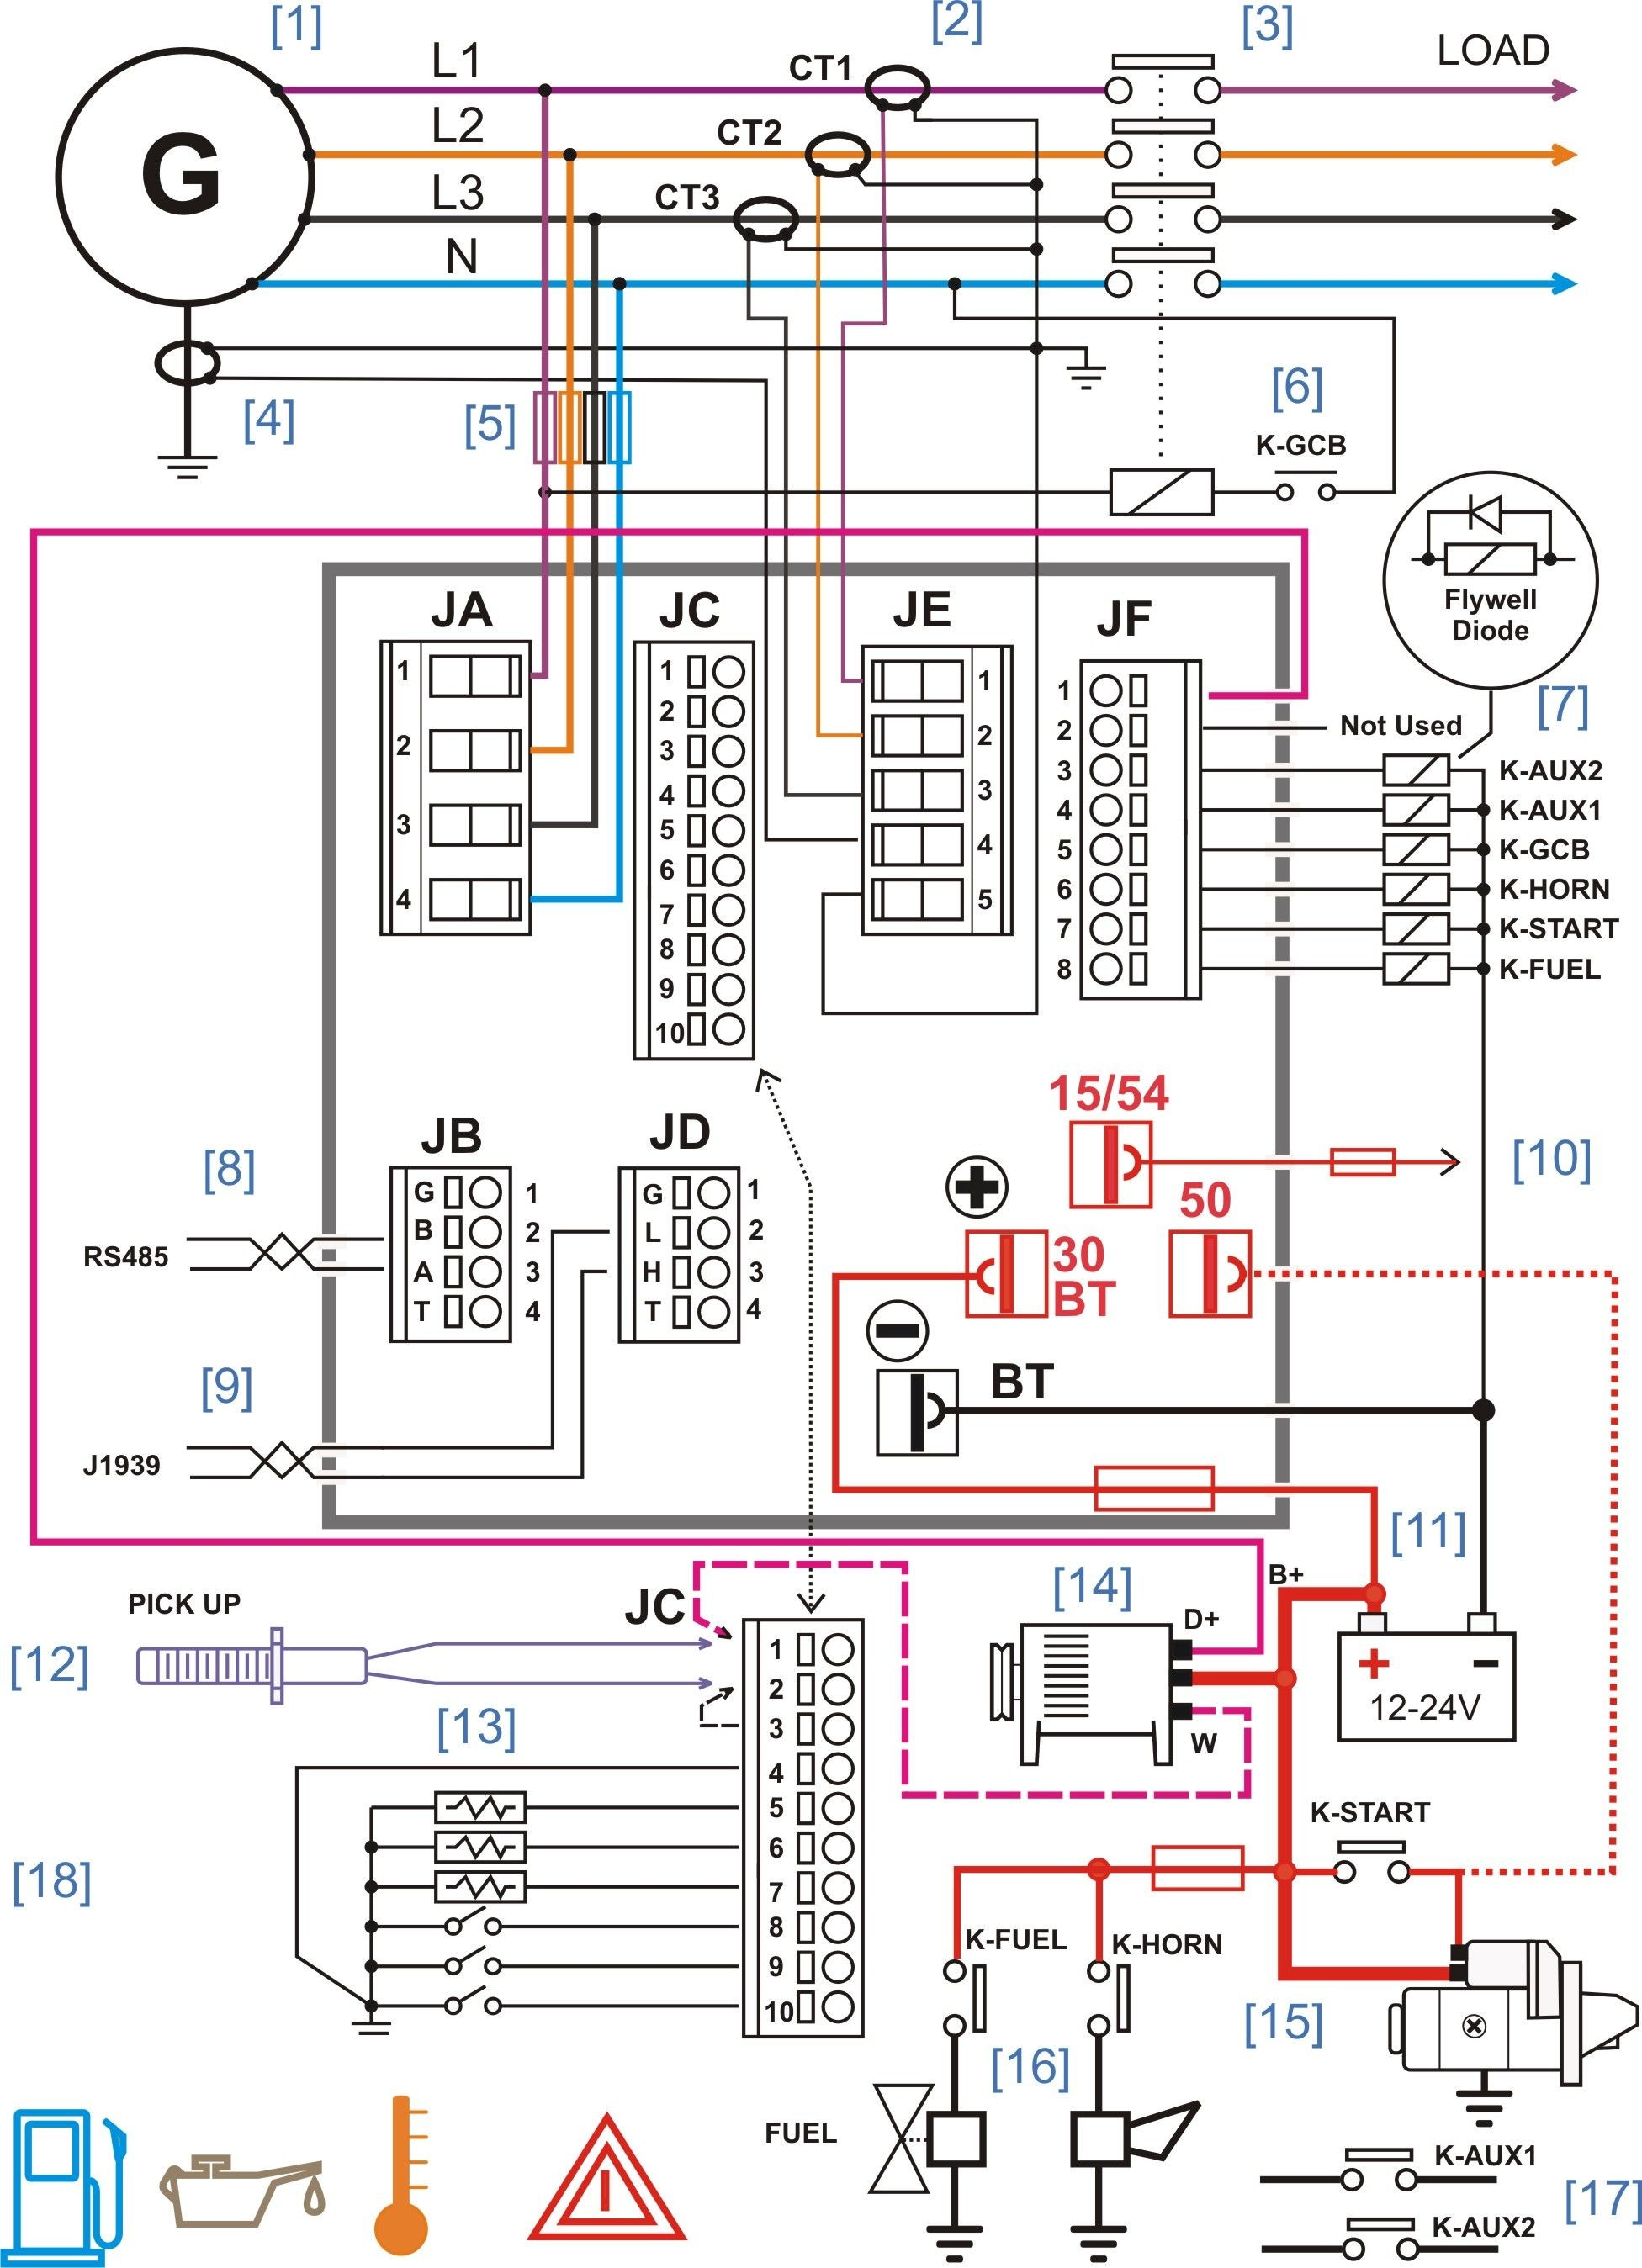 Generator Control Panel Wiring Diagram